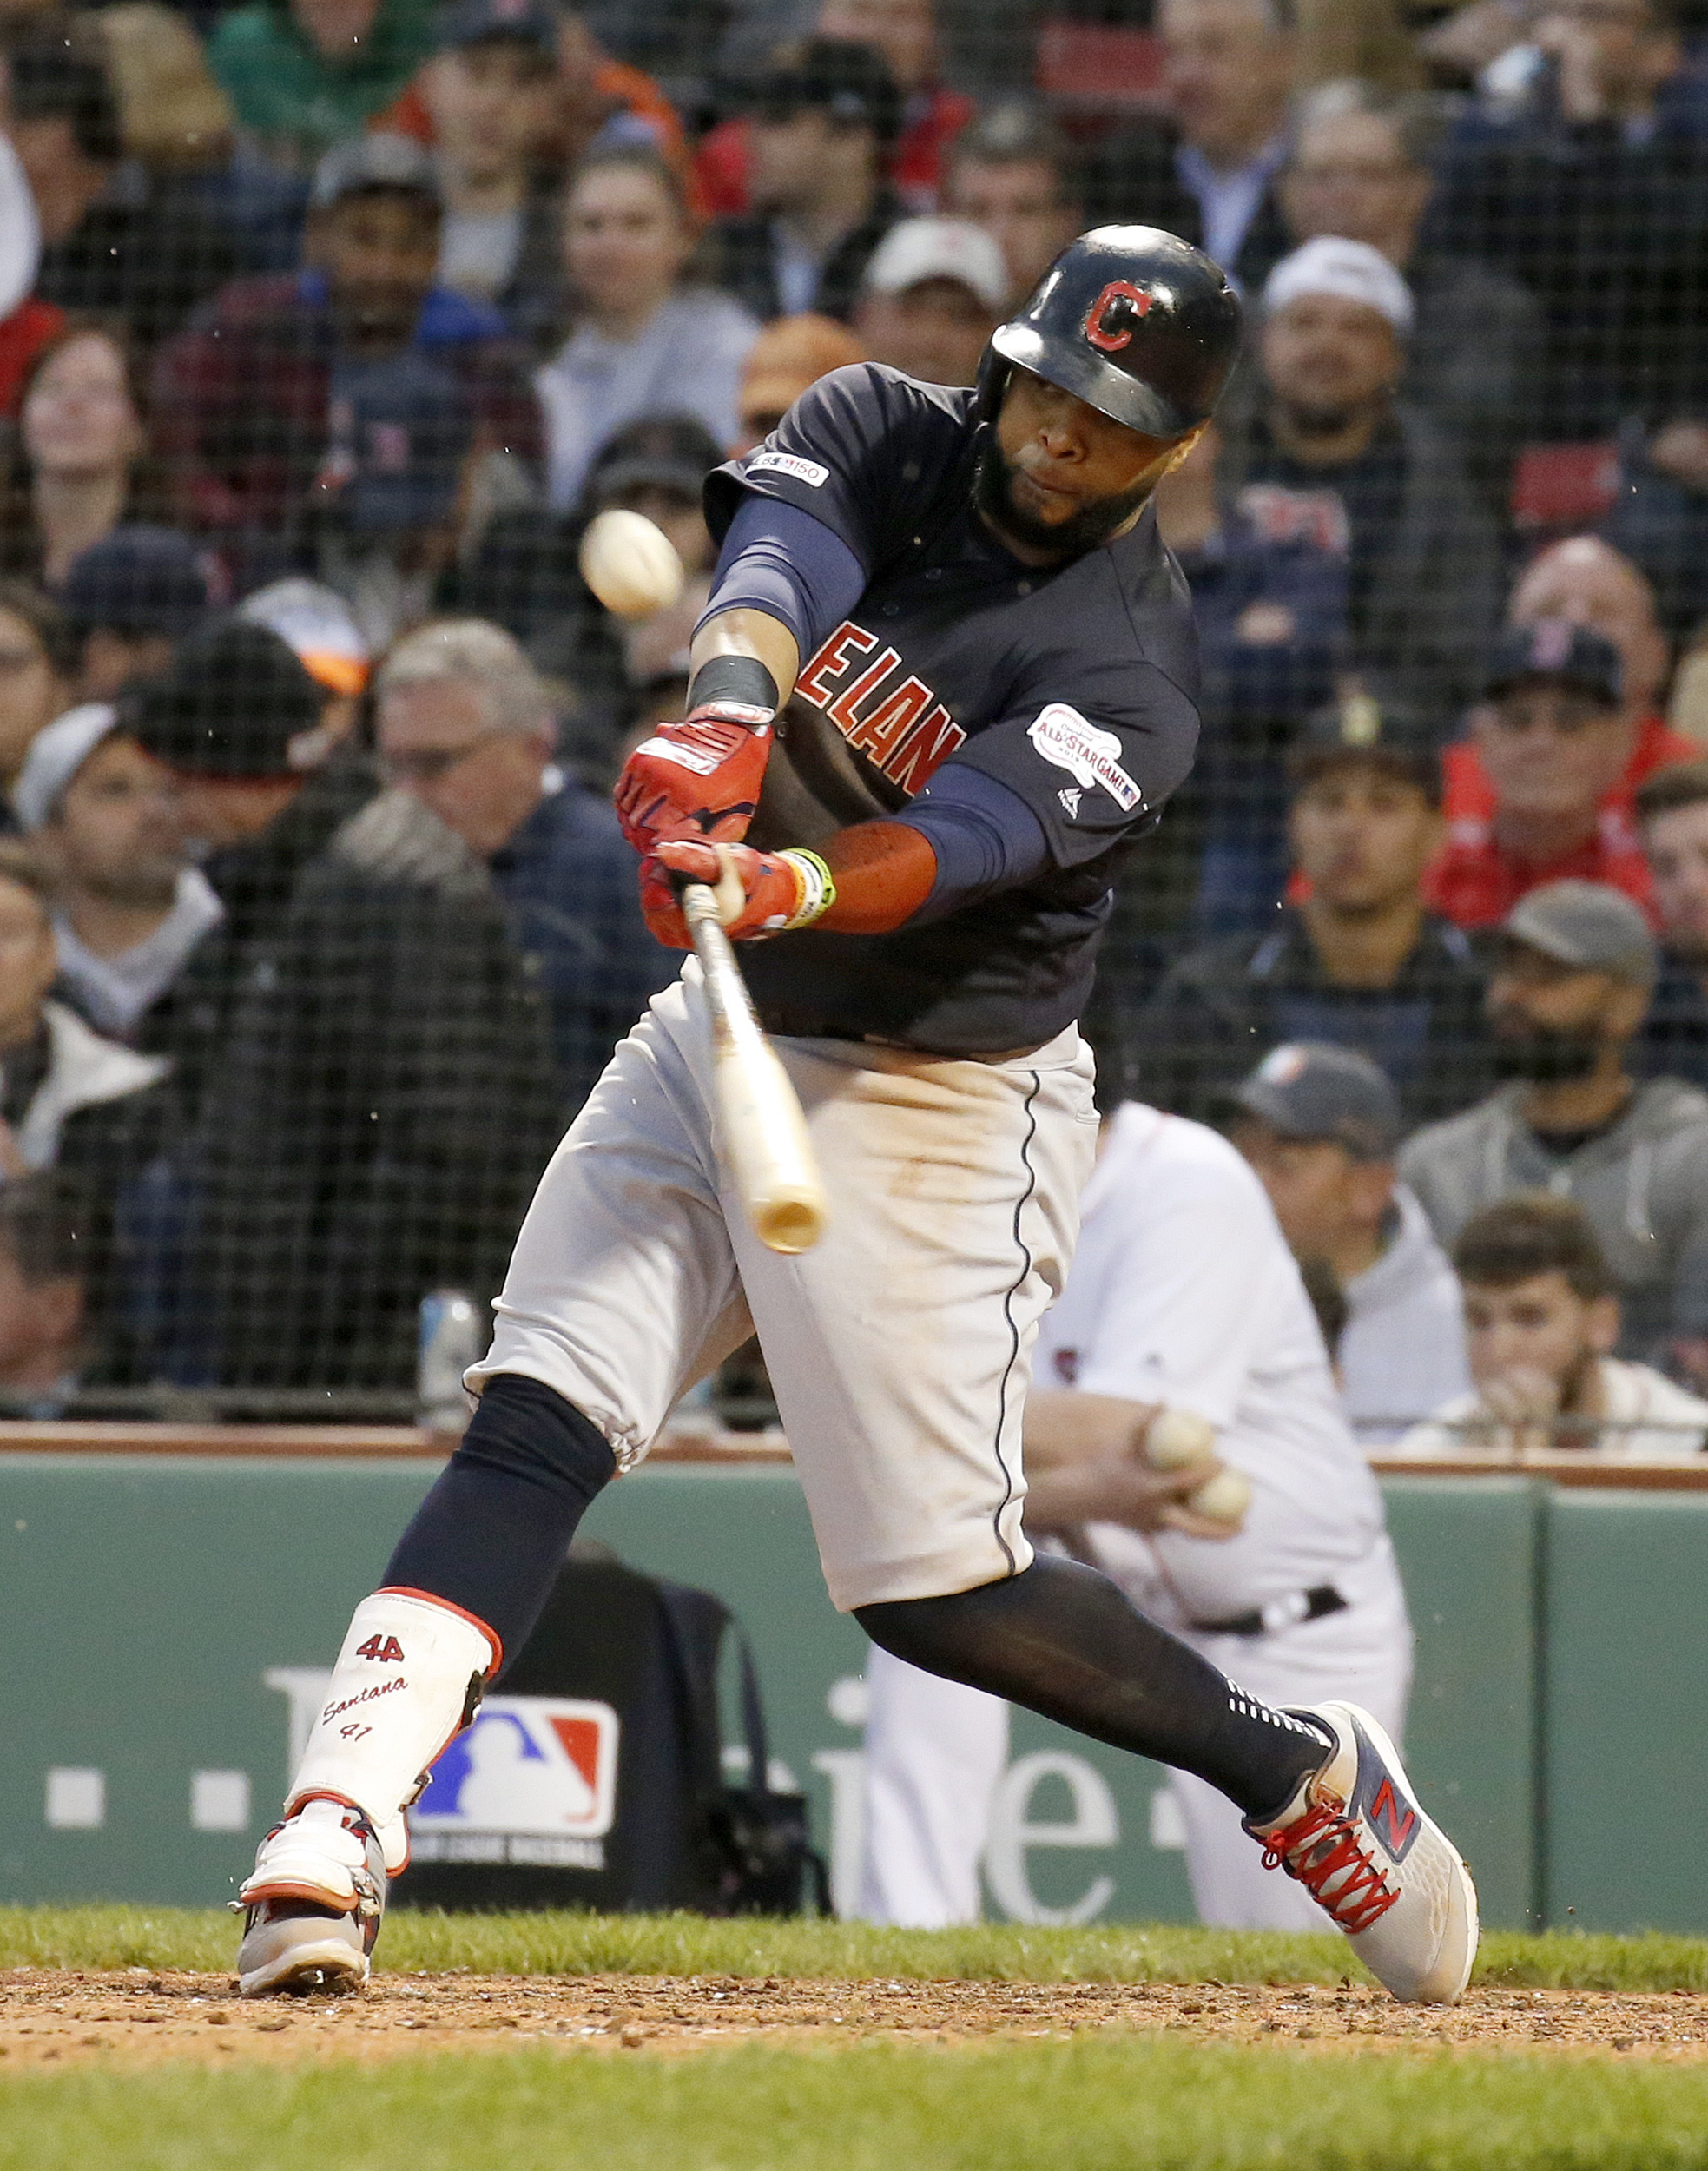 Santana powers Indians past Red Sox 14-9